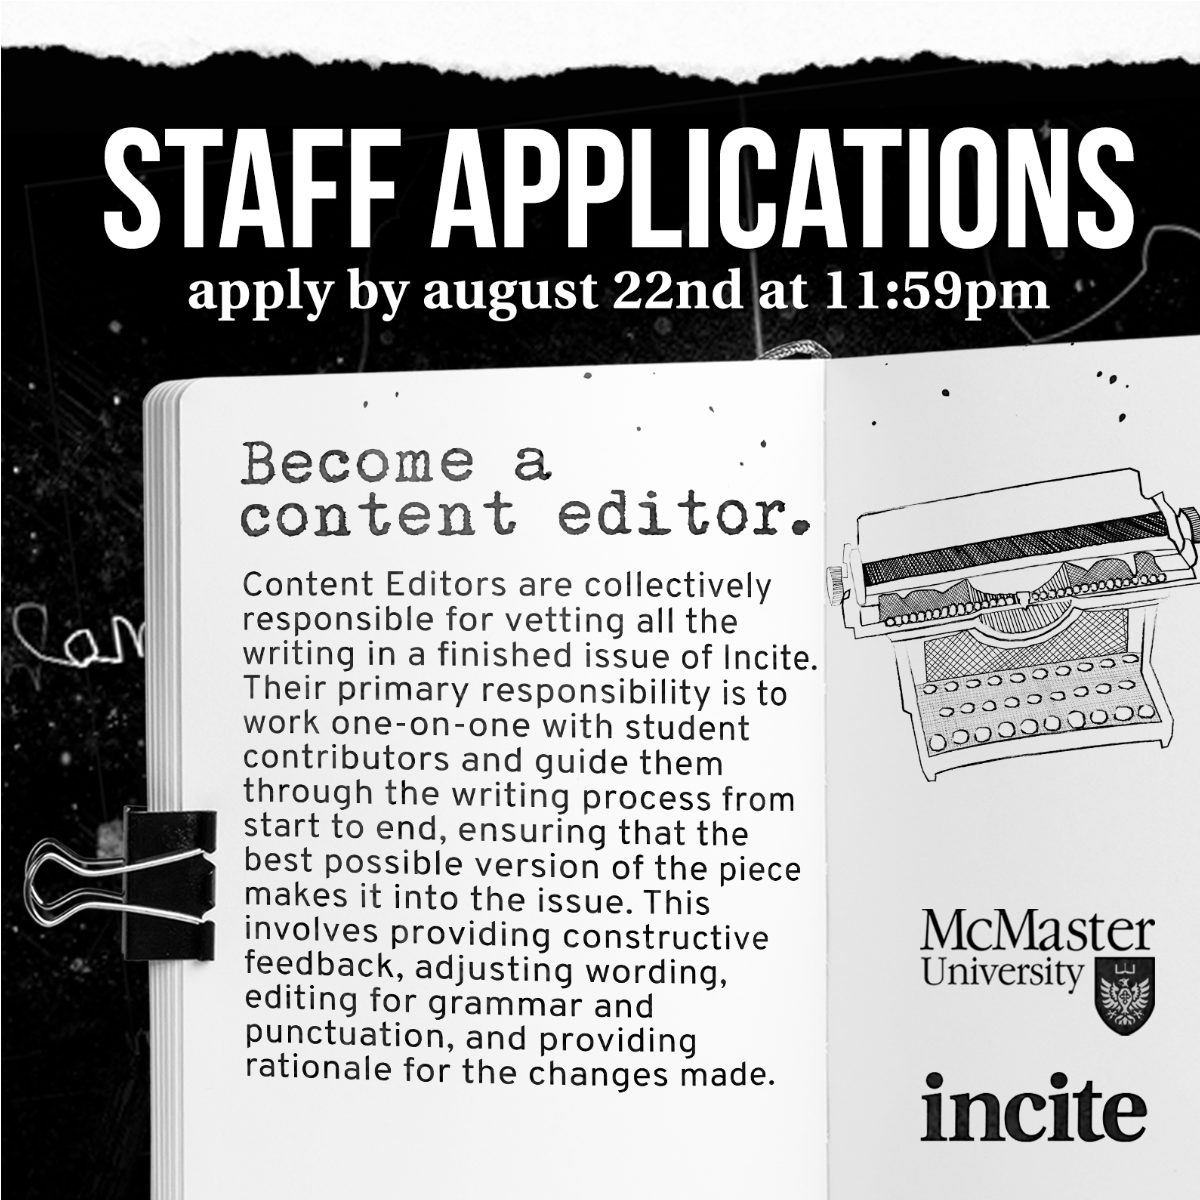 Content Editors are collectively responsible for vetting all the writing in a finished issue of Incite. Their primary responsibility is to work one-on-one with student contributors and guide them through the writing process from start to end, ensuring that the best possible version of the piece makes it into the issue. This involves providing constructive feedback, adjusting wording, editing for grammar and punctuation, and providing rationale for the changes made.